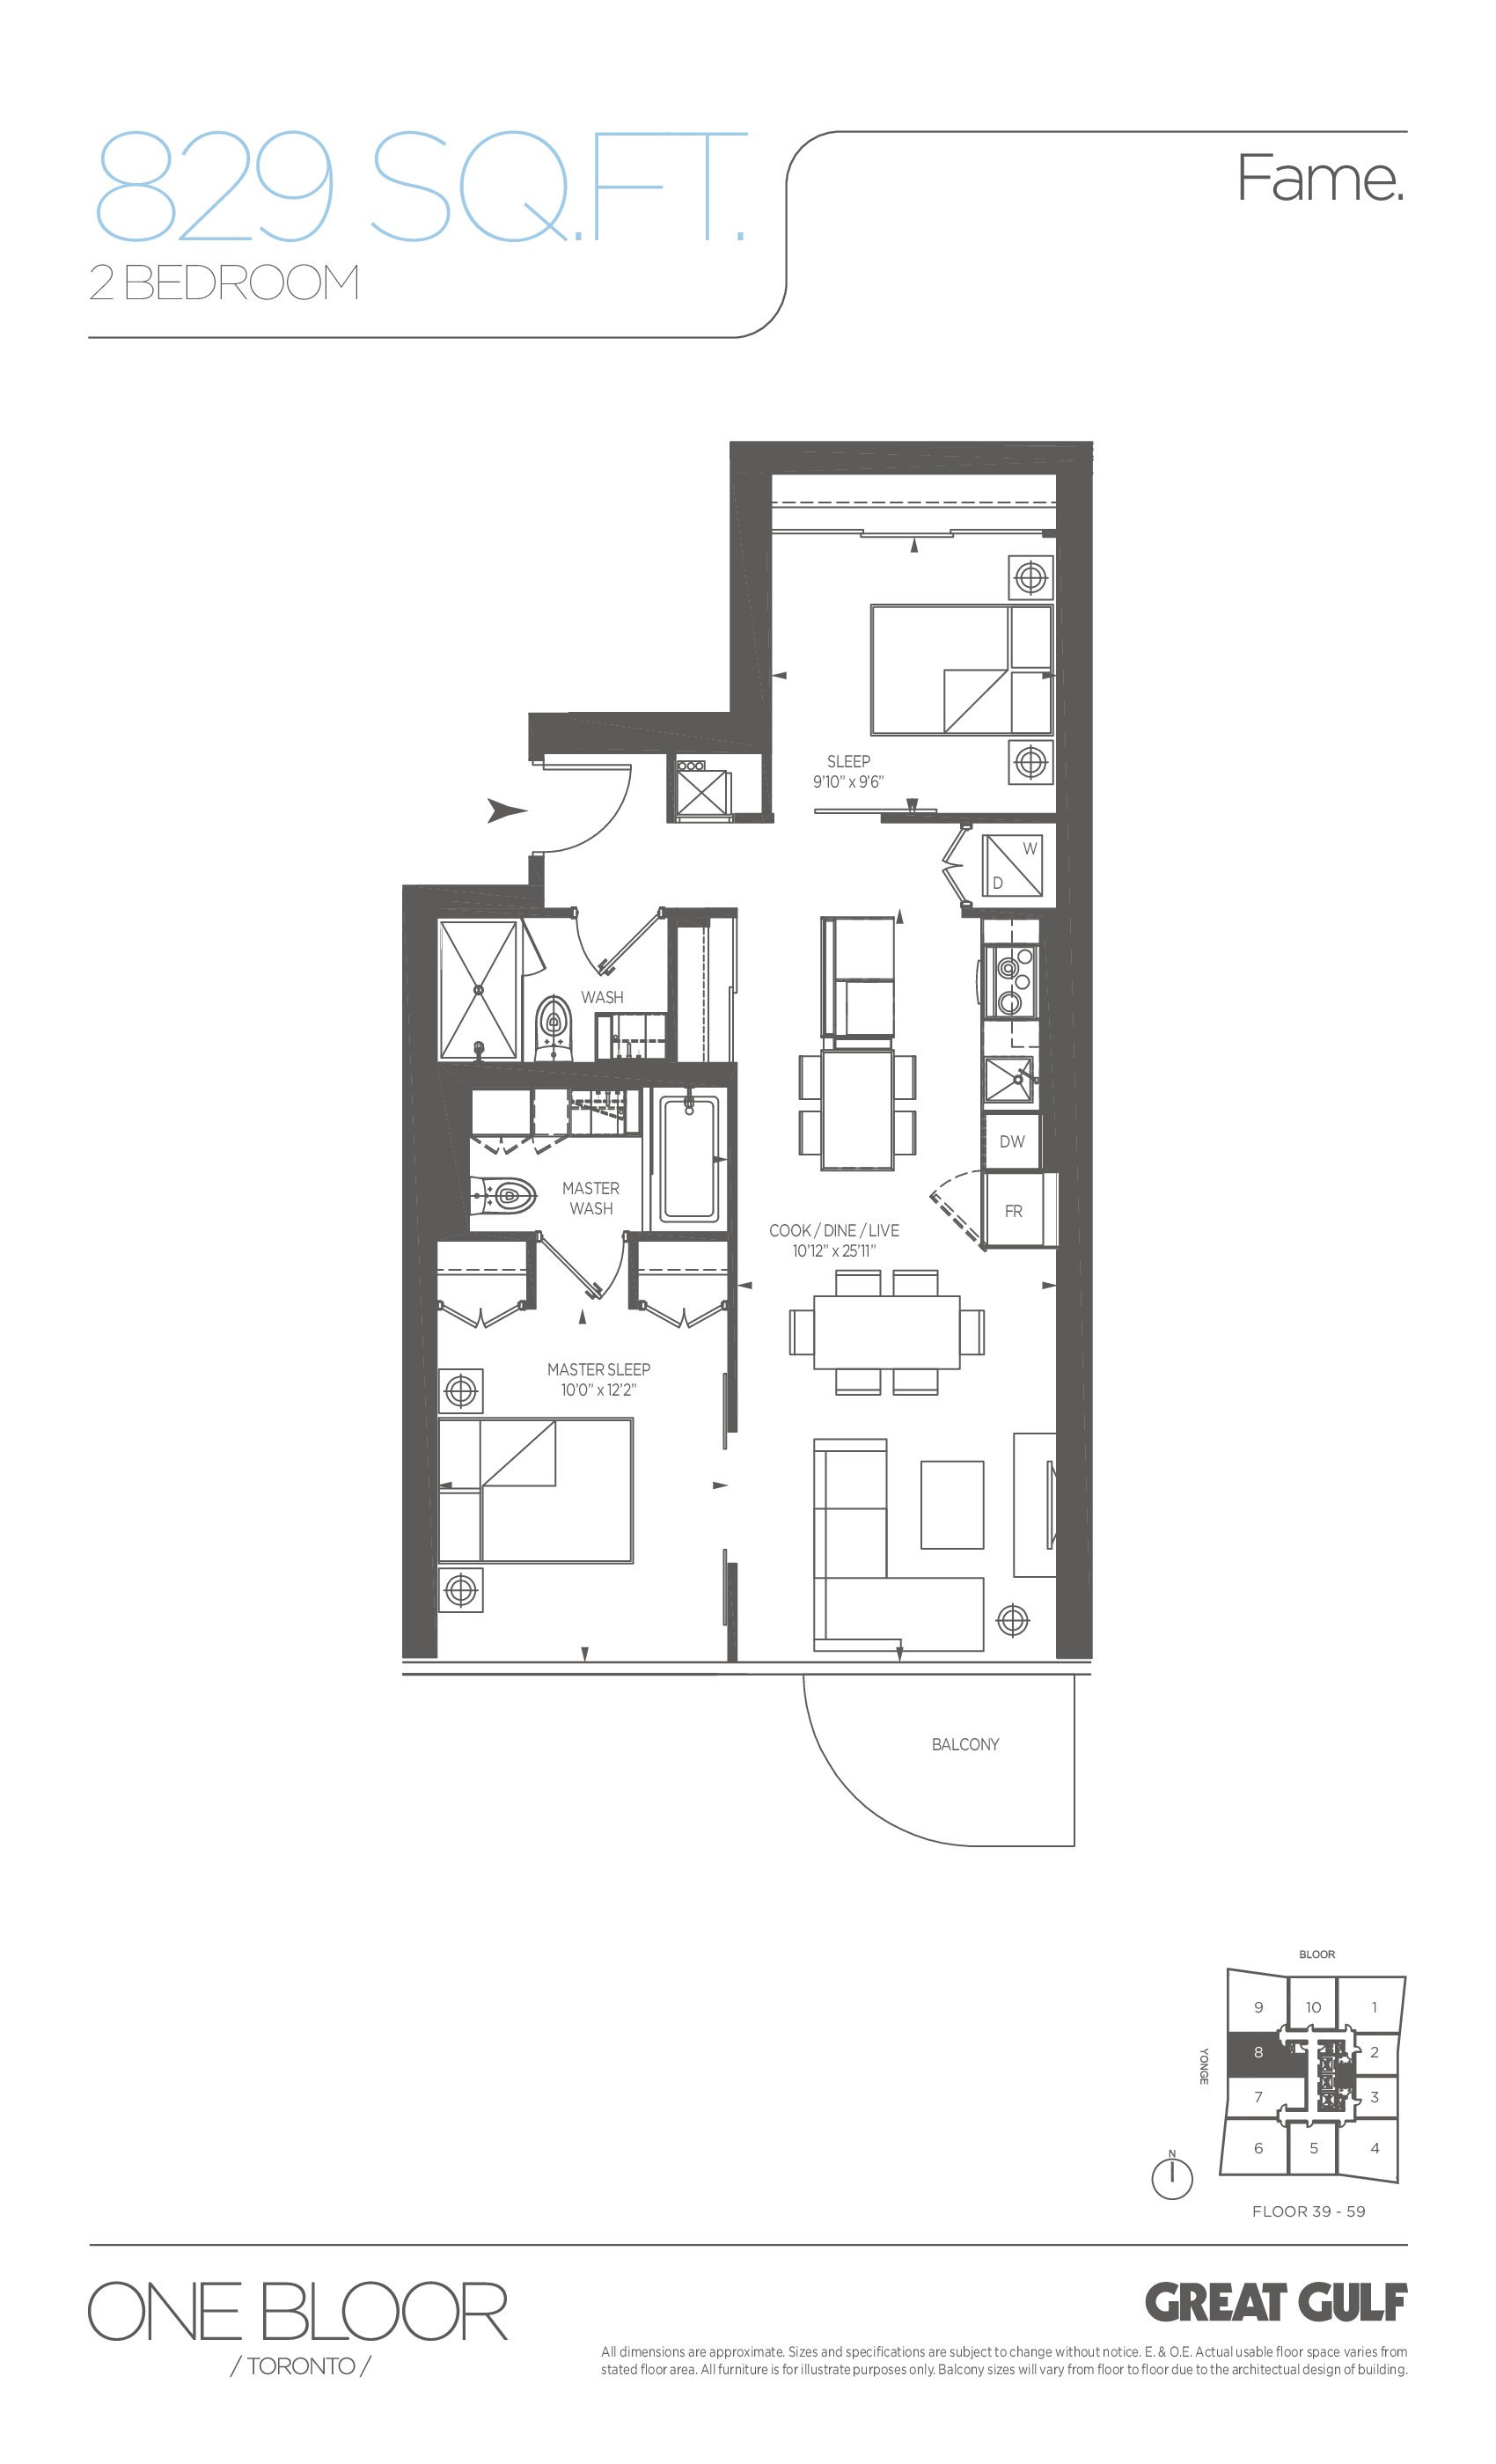 Fame Floor Plan at One Bloor Condos - 829 sq.ft